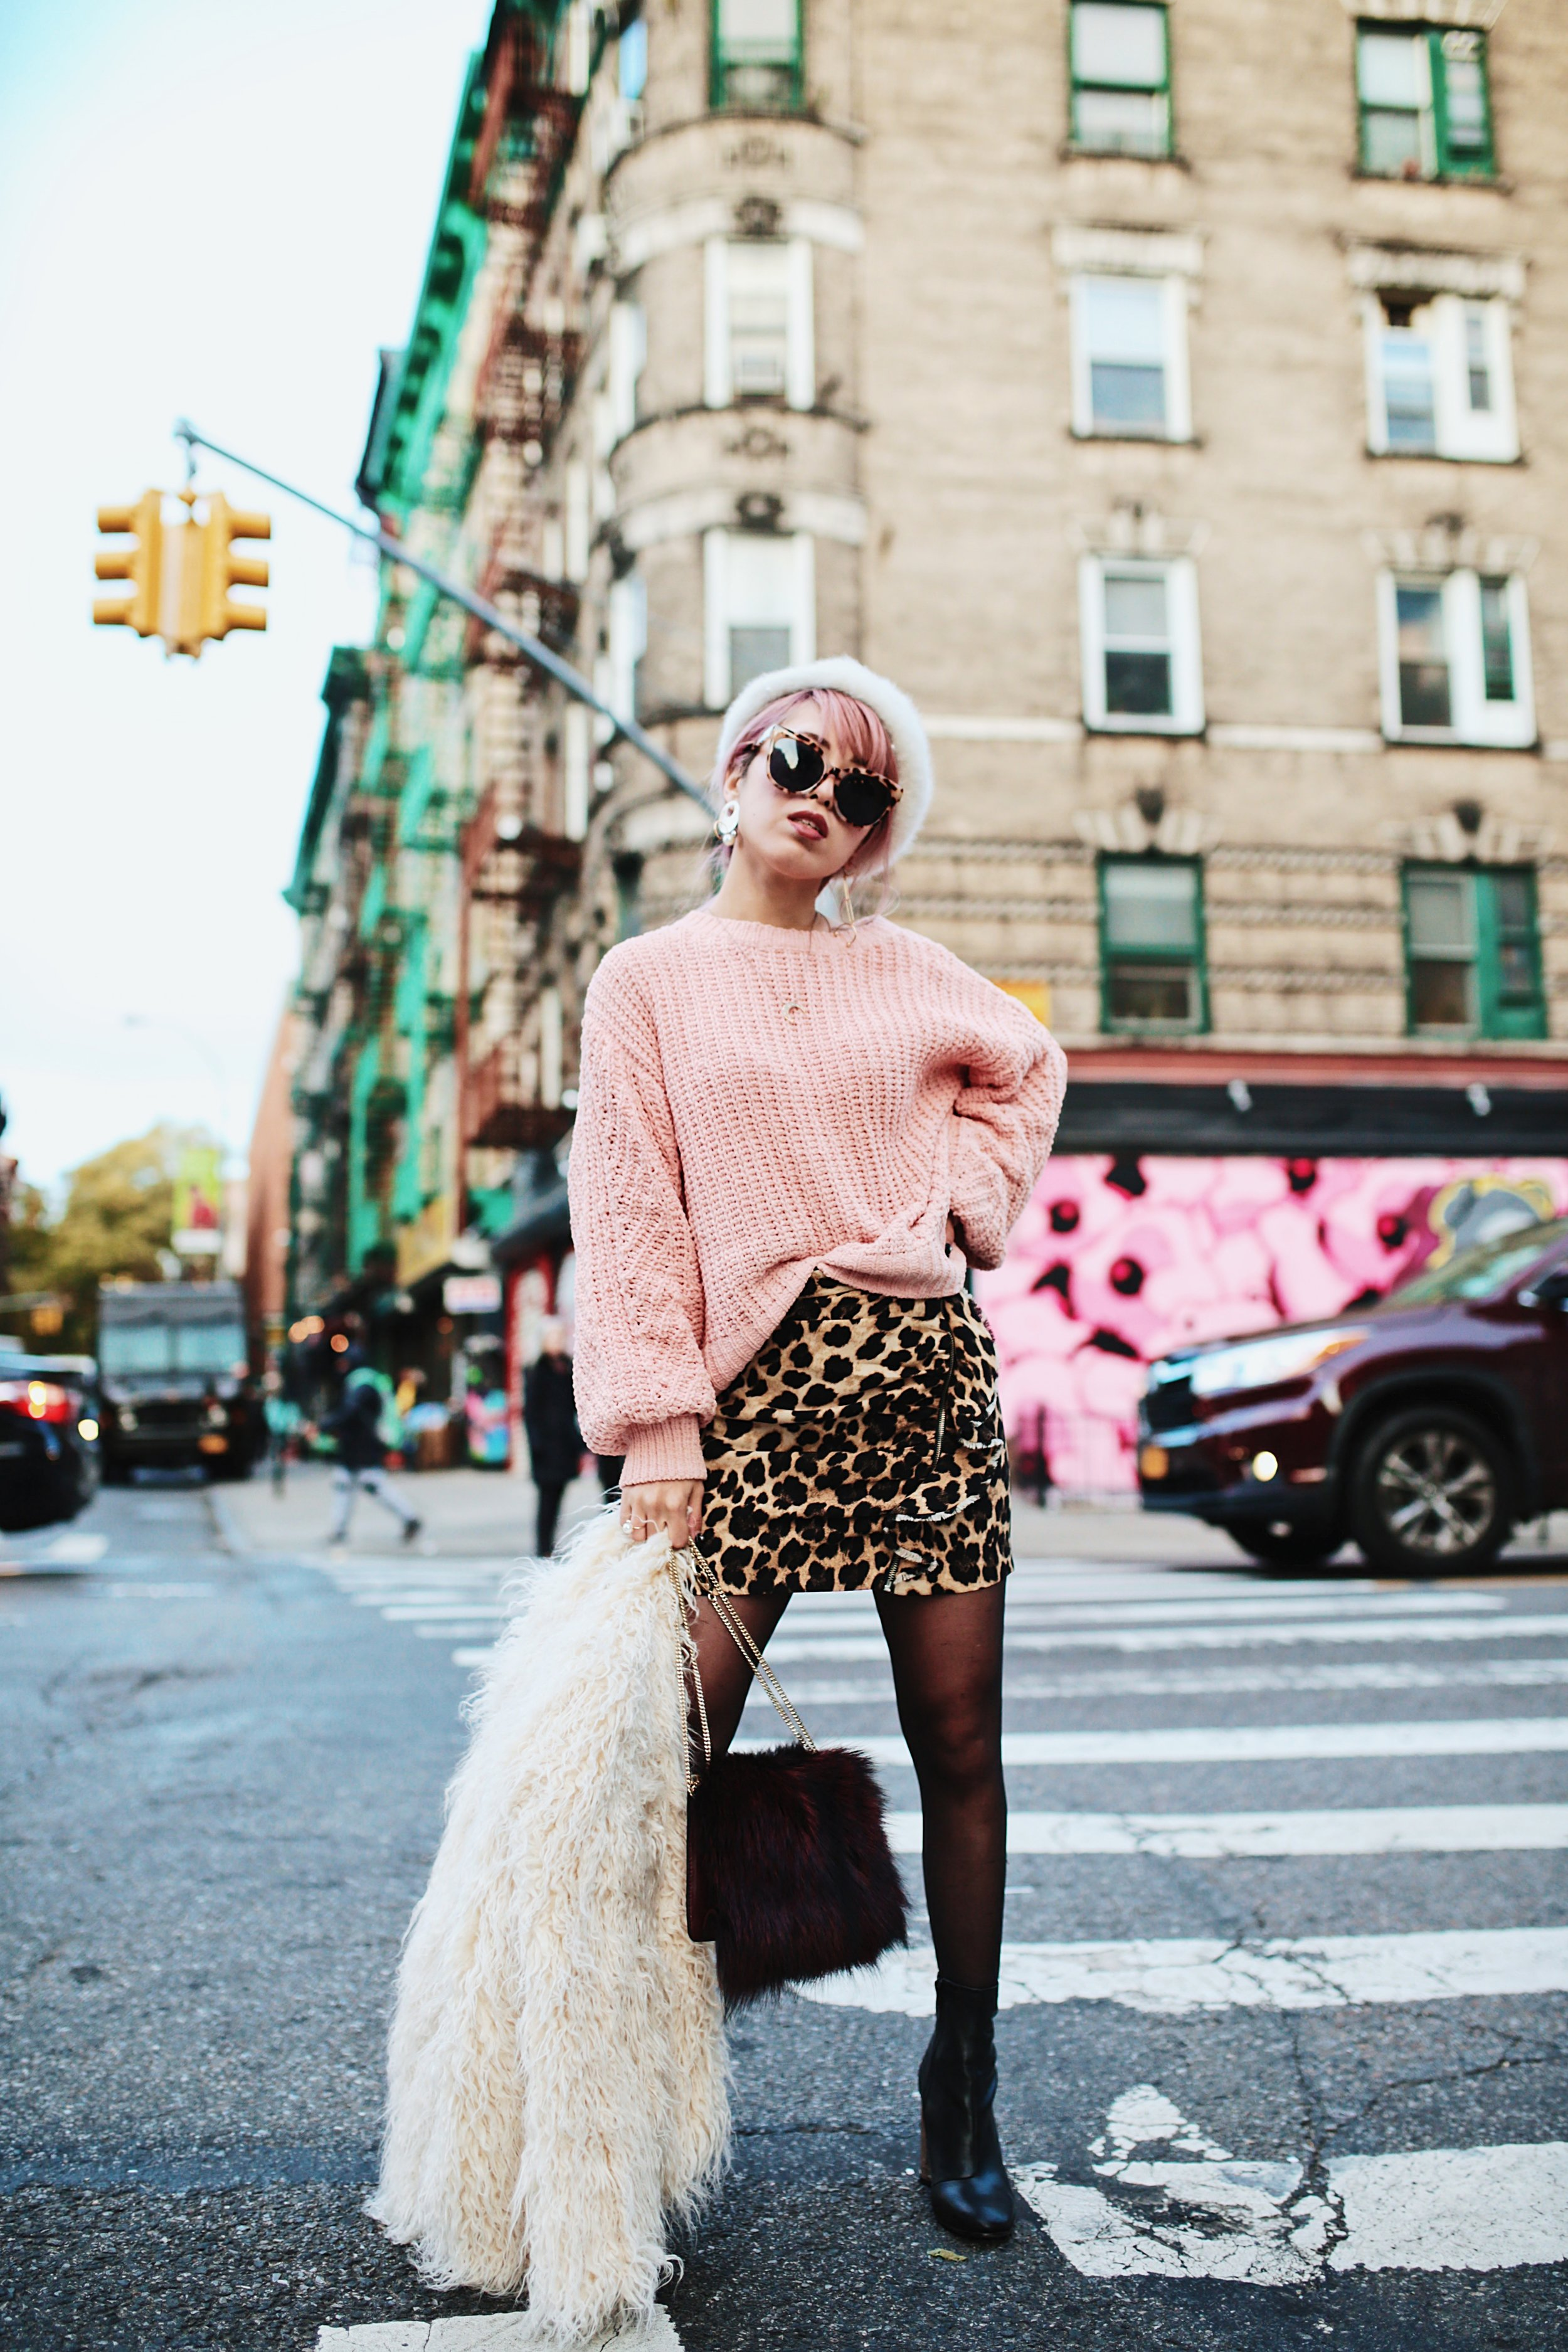 H&M Pink Sweater-Zara leopar prins mini skirt-H&M white shaggy coat-DVF fur bag-anthropologie white beret-Urban Outfitters Sunglasses-ALDO Ankle Boots-Mango Earrings-Aikas Love Closet-New York City-Pink Hair-Style Fashion Blogger-Seattle-Japanese_Petite fashion blogger